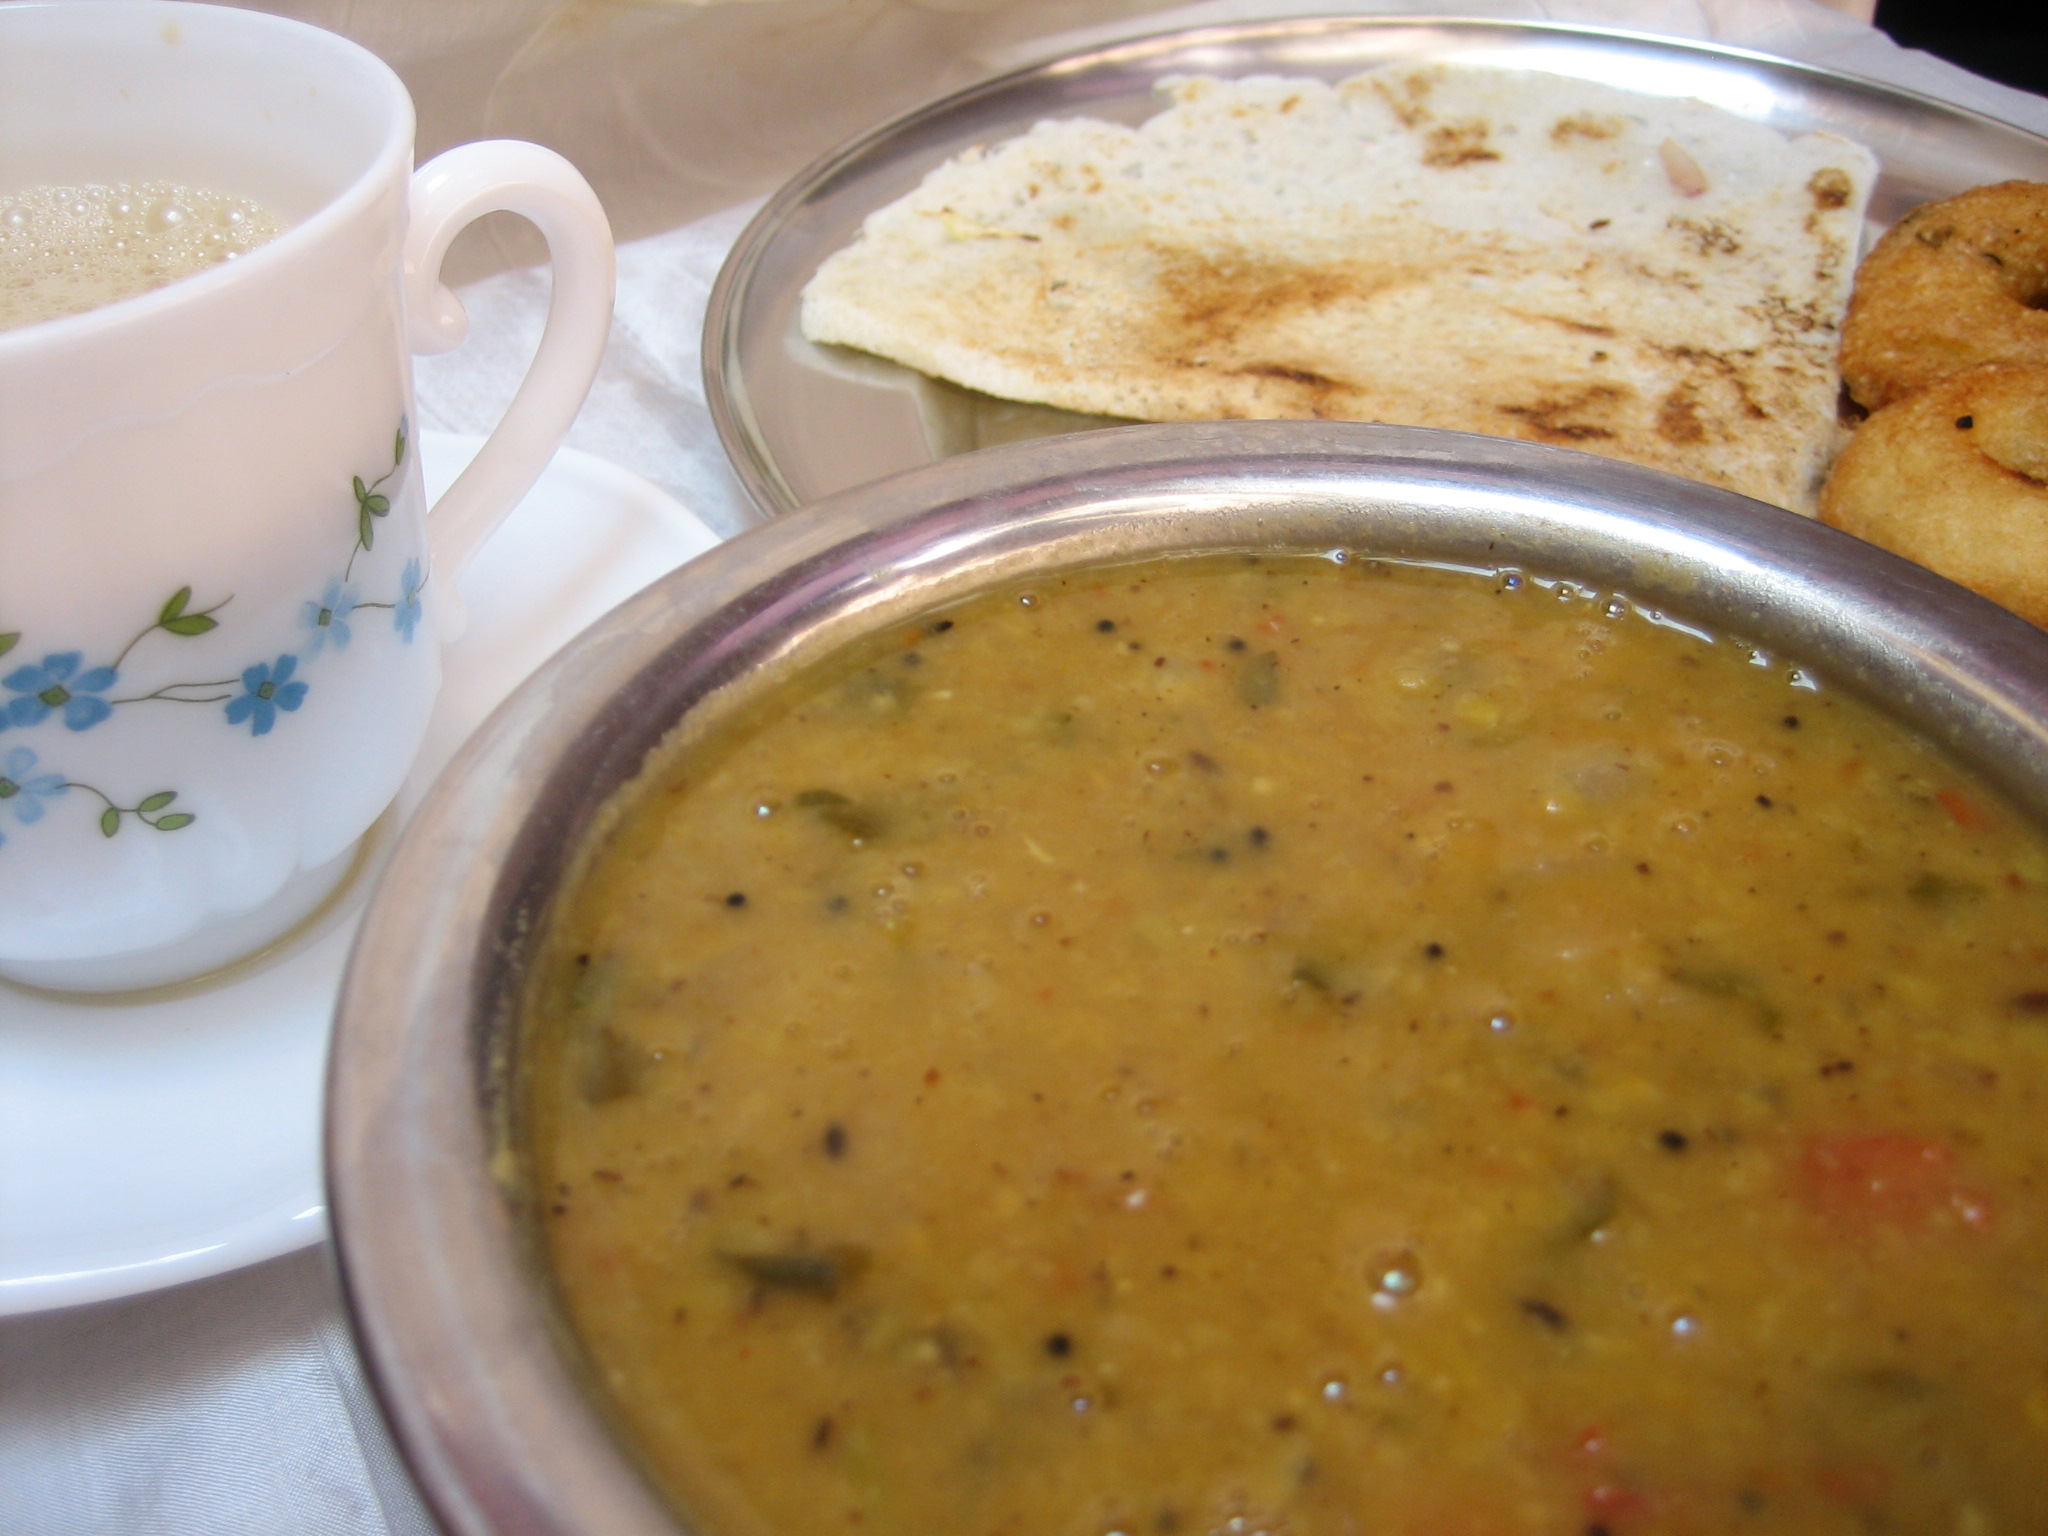 tiffin-sambar.jpg